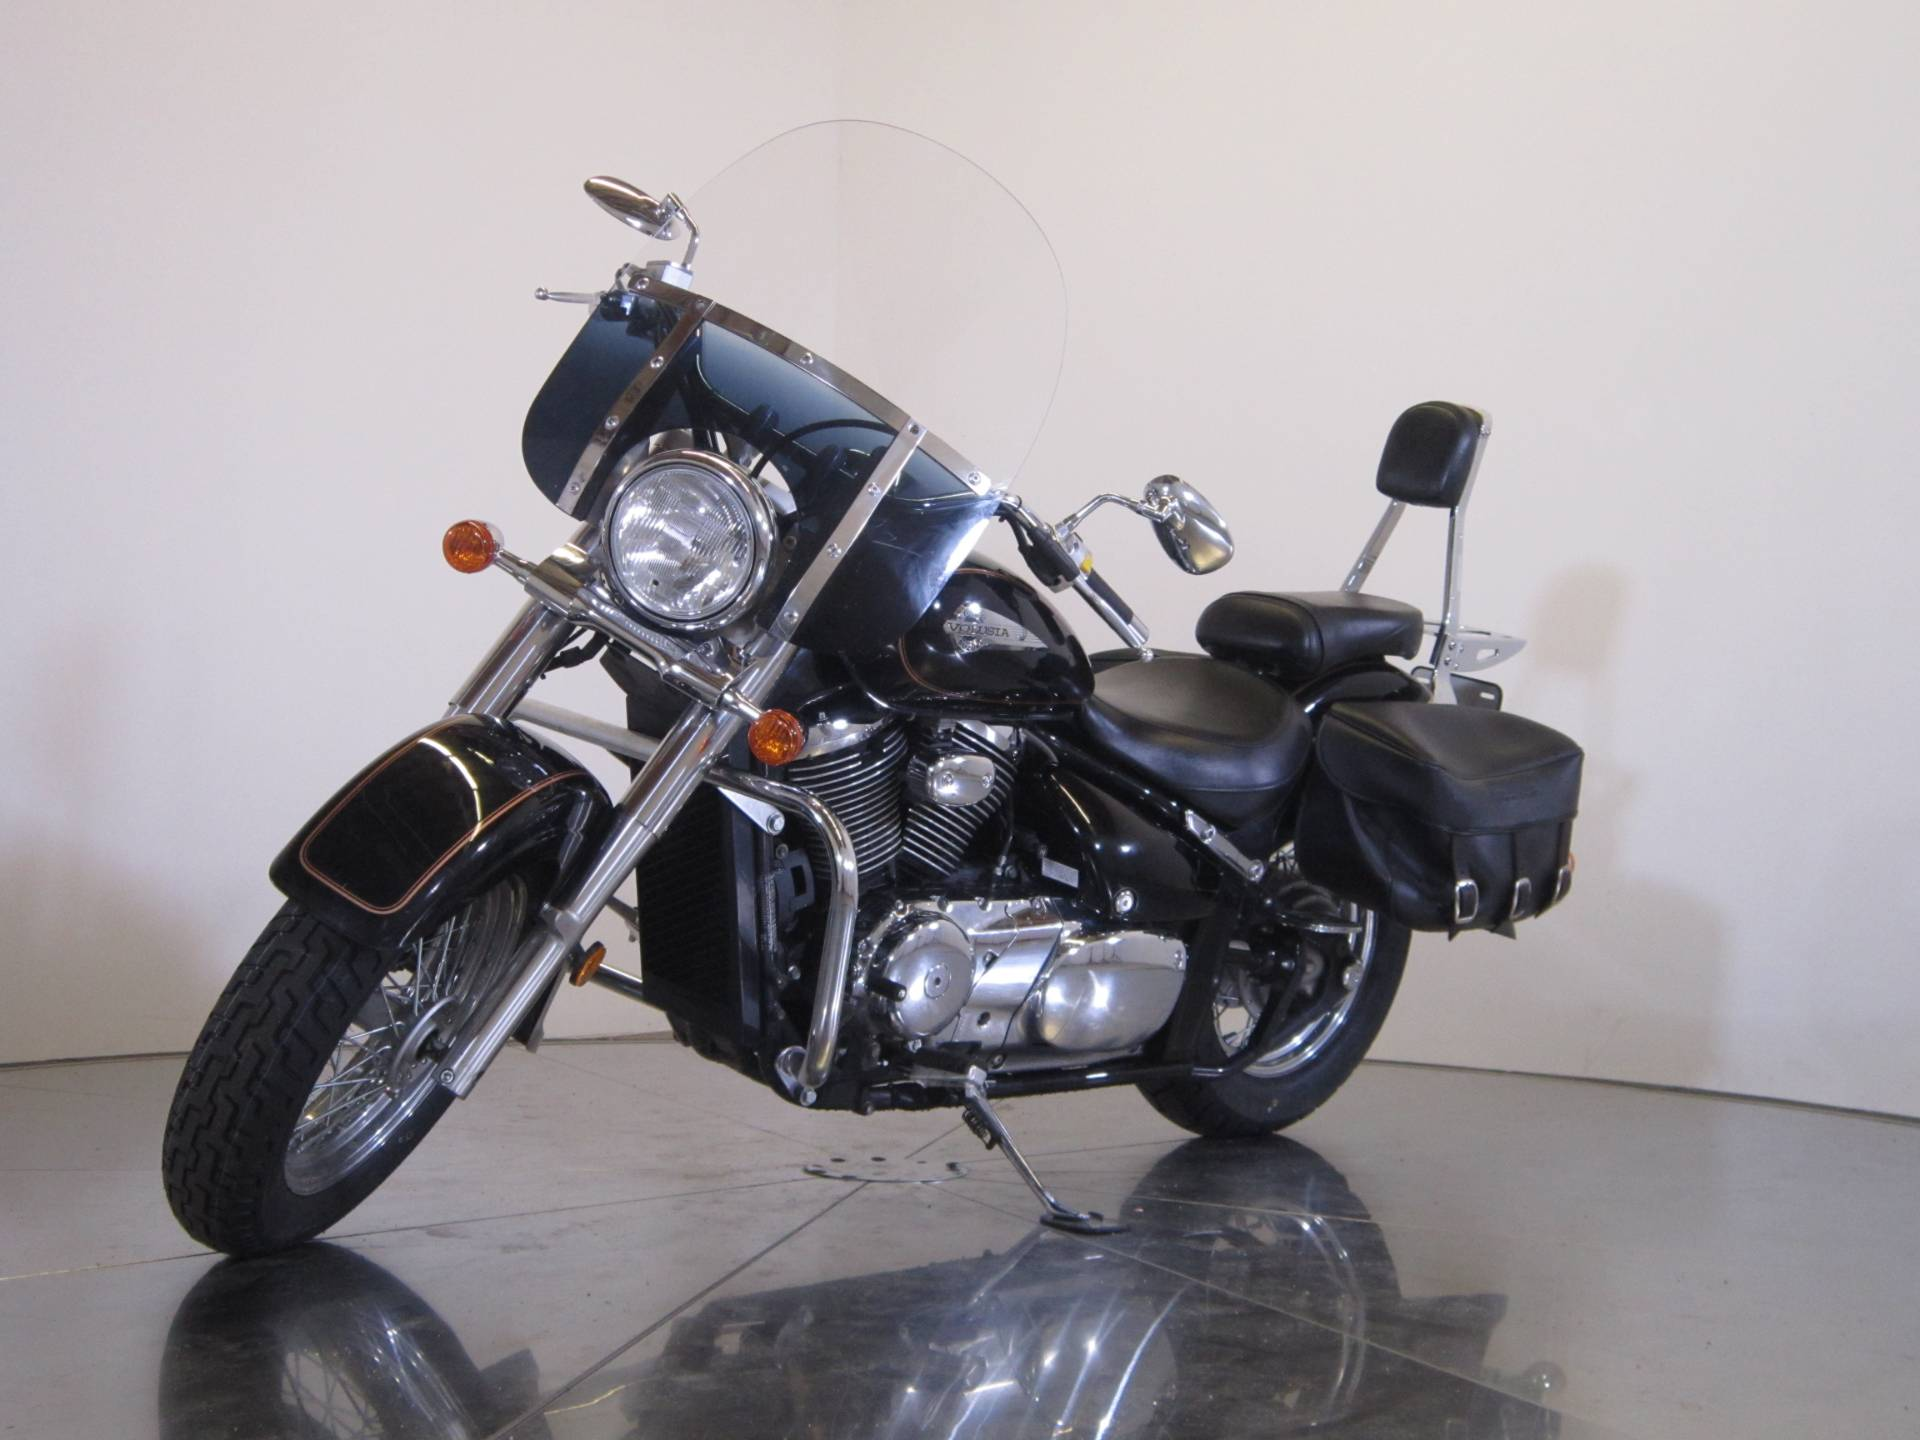 2004 Suzuki Intruder Volusia 800 4